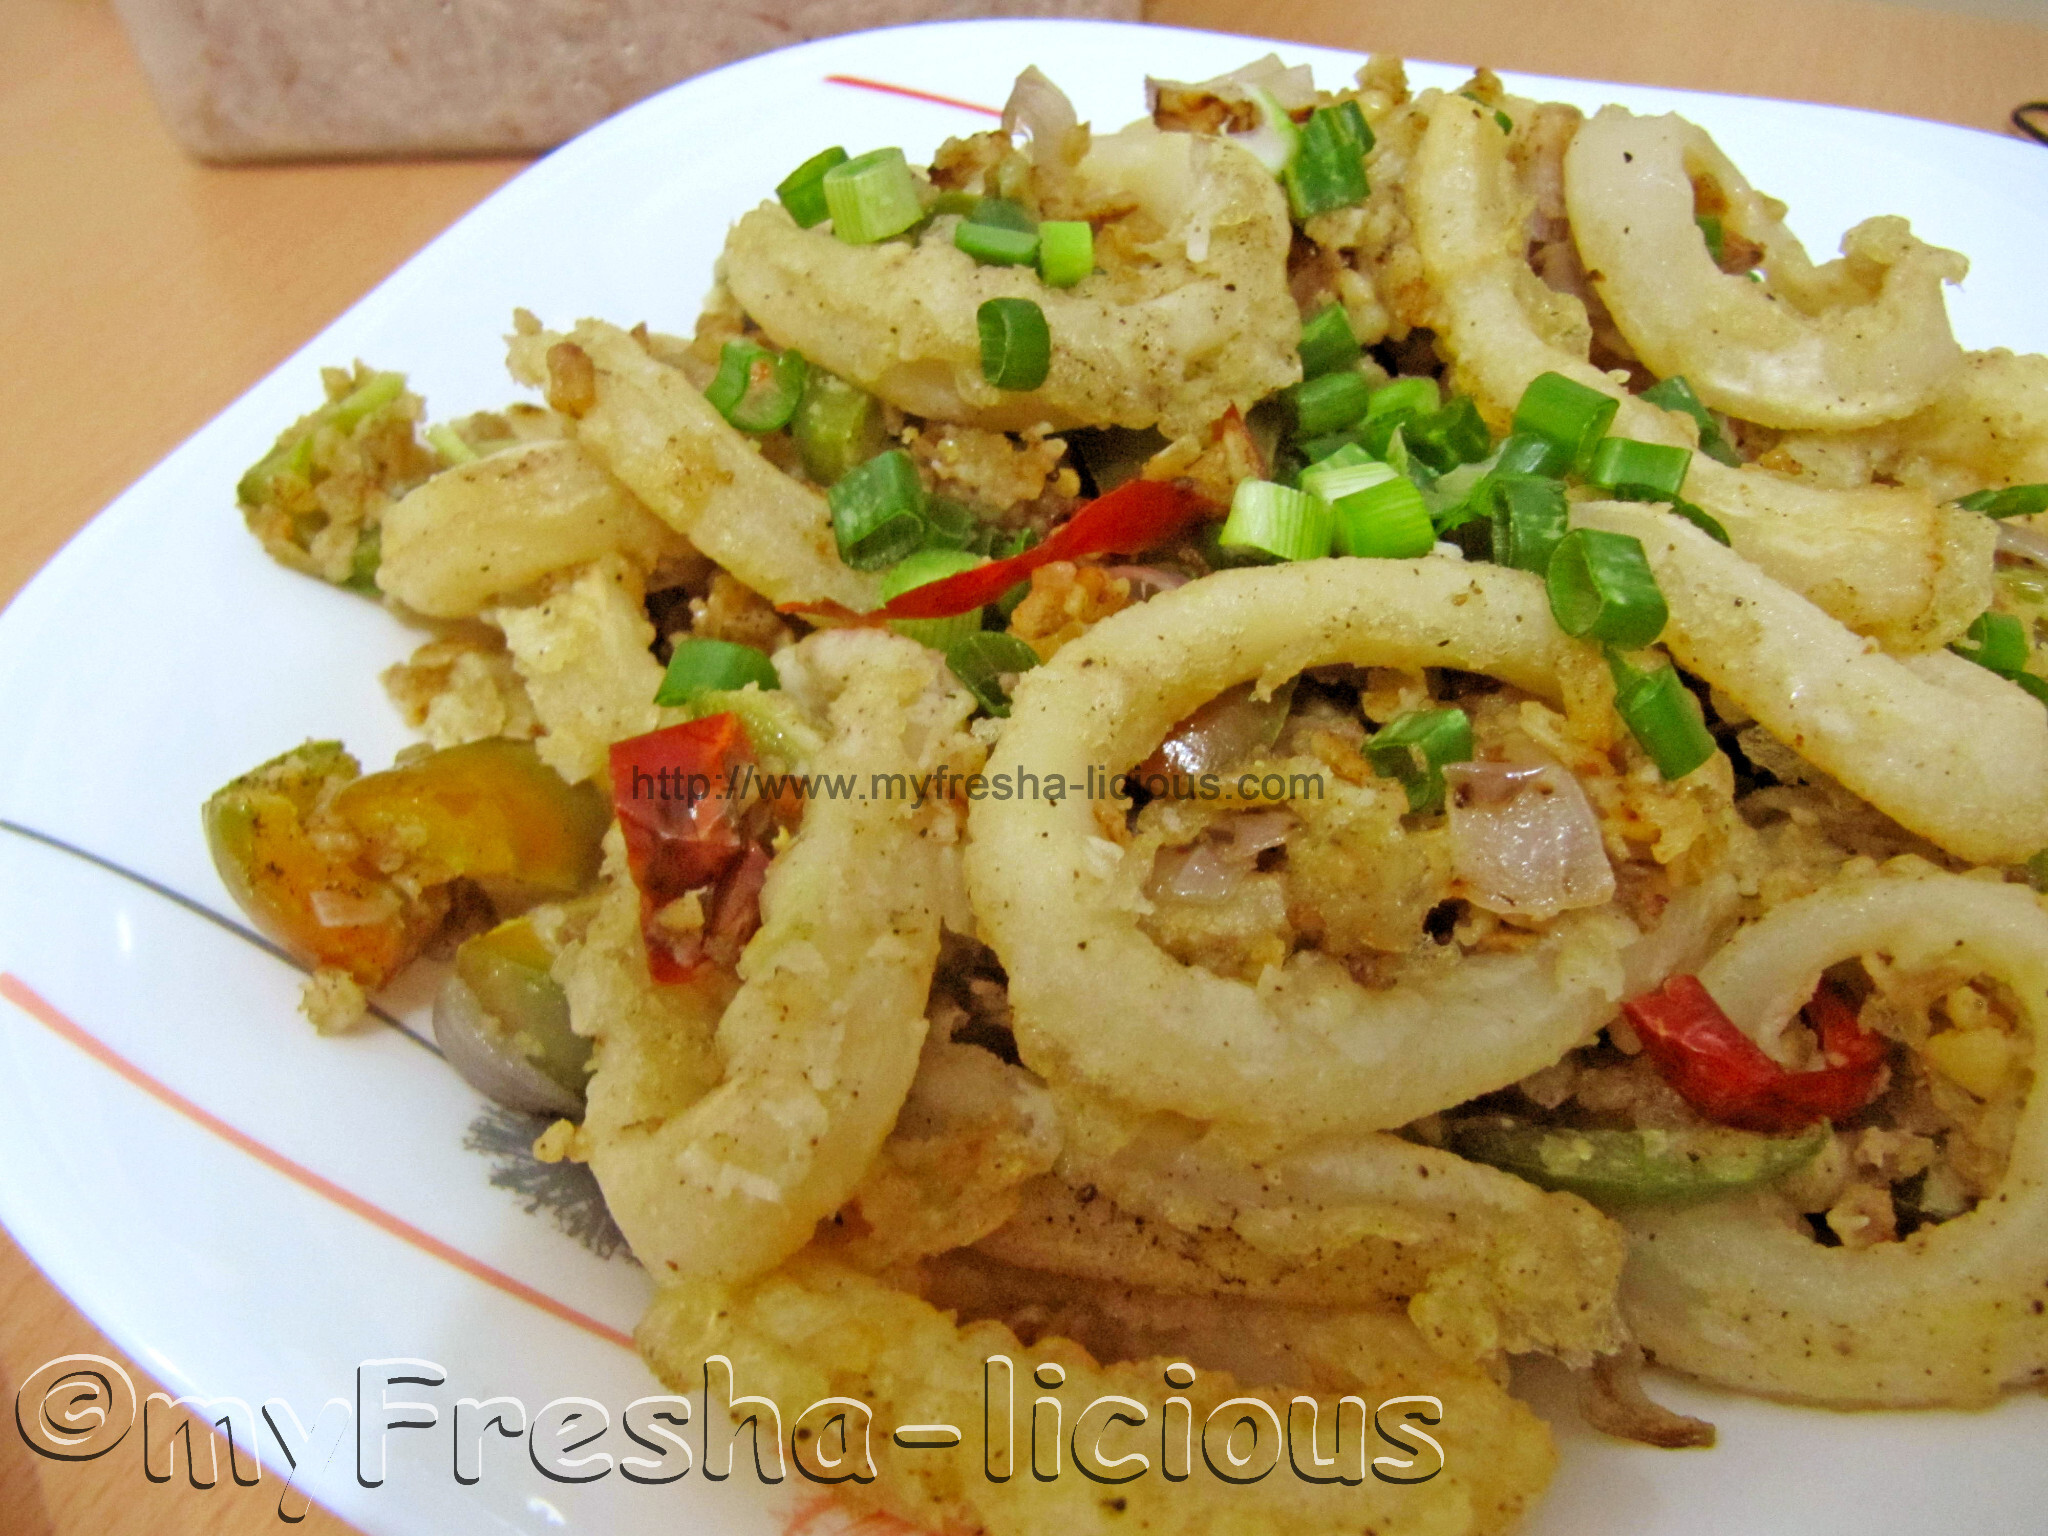 Hot & Spicy Oatmeal Squid